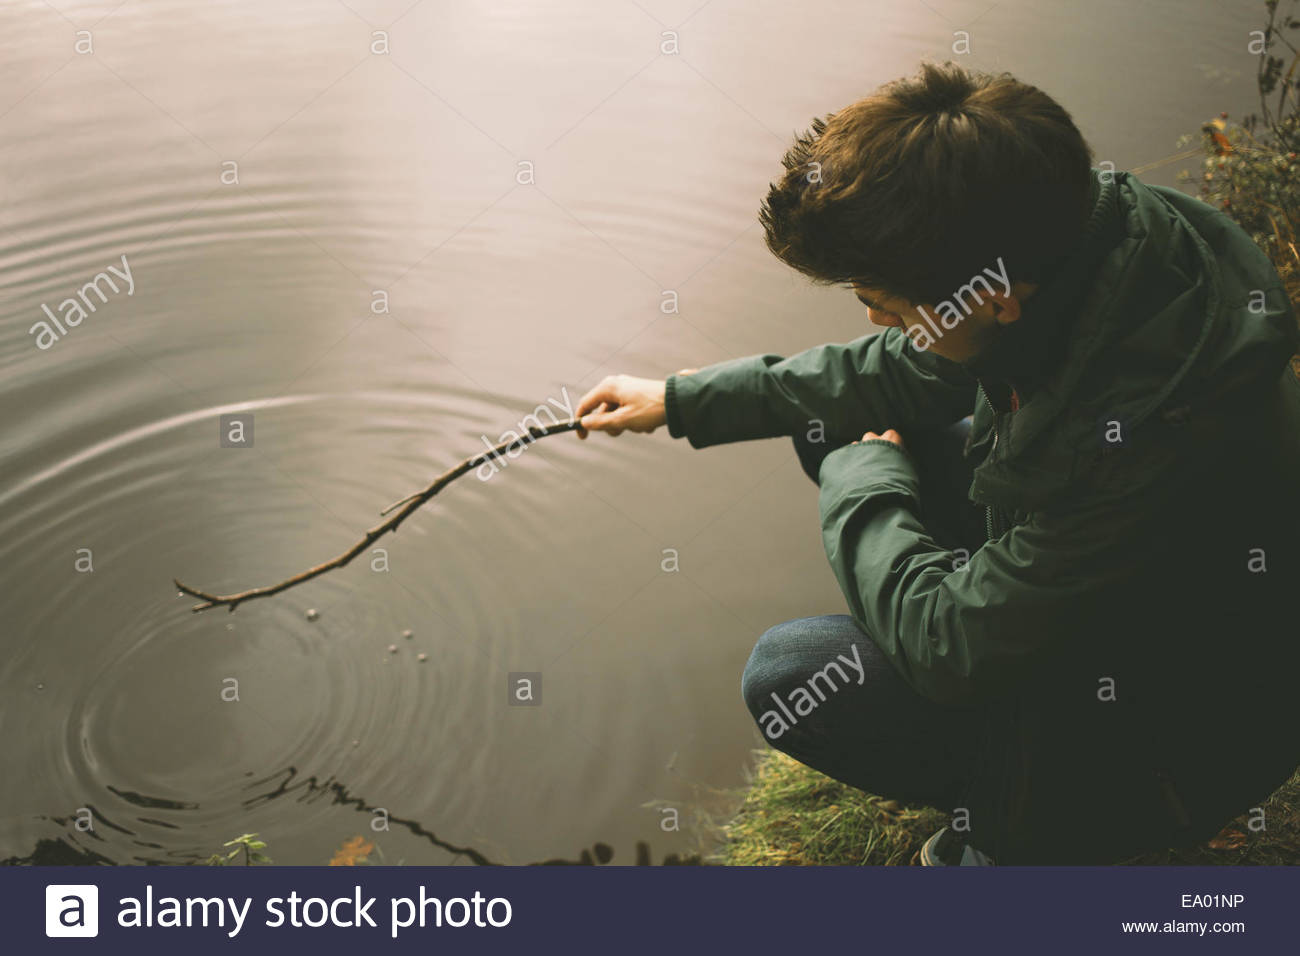 Young man crouching on riverbank making ripples in water with twig - Stock Image